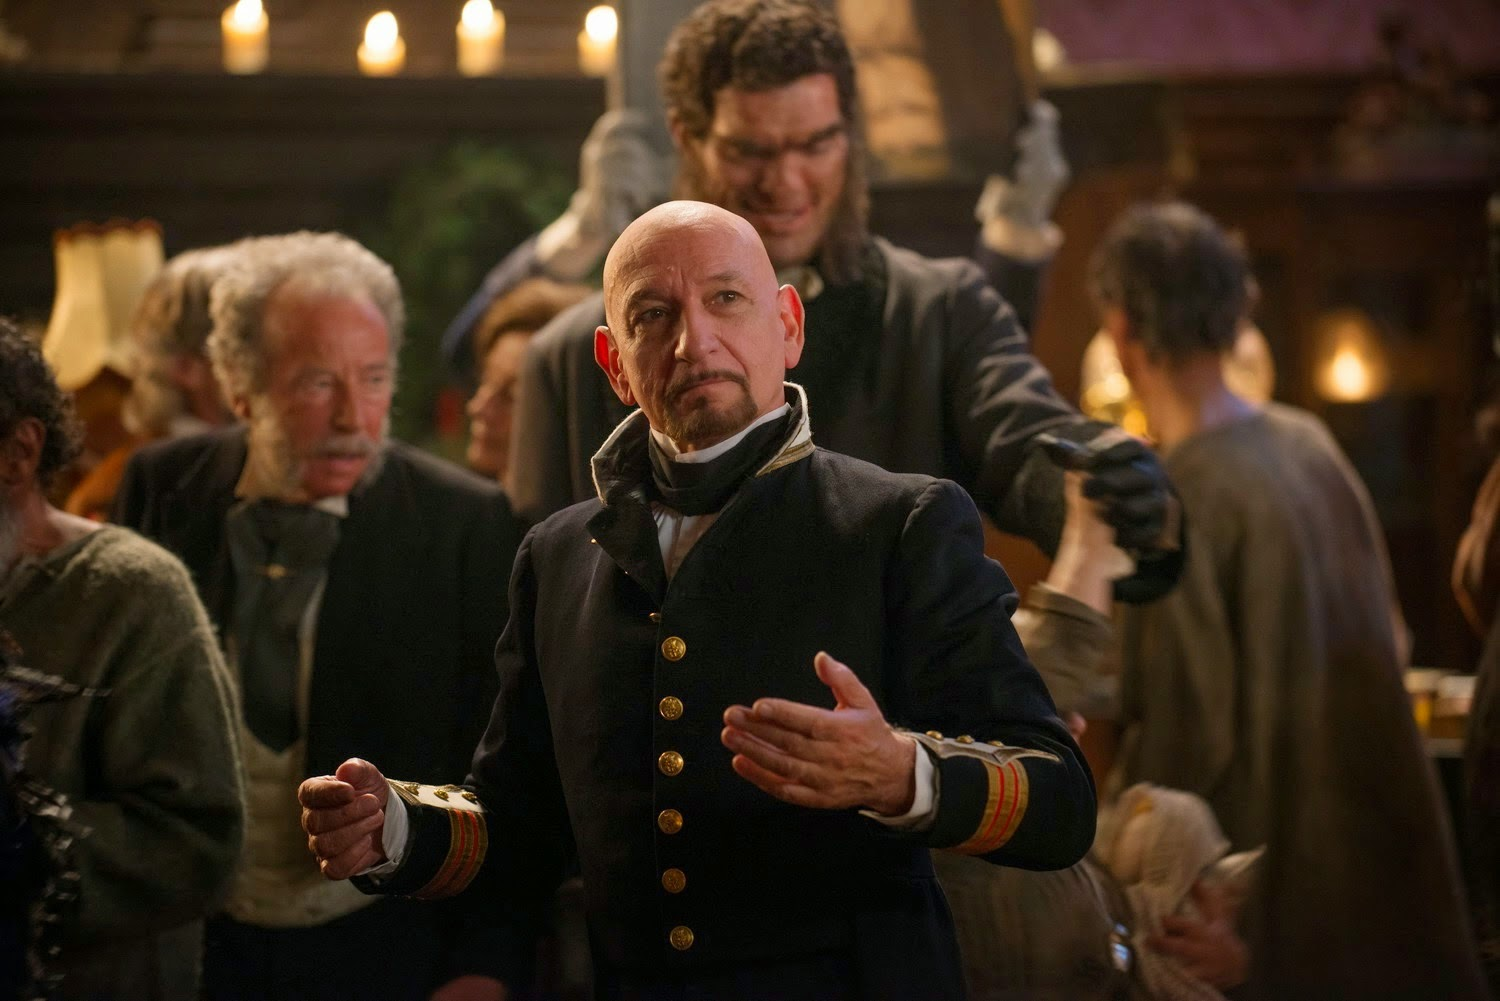 Ben Kingsley as the asylum head in Eliza Graves (2014)